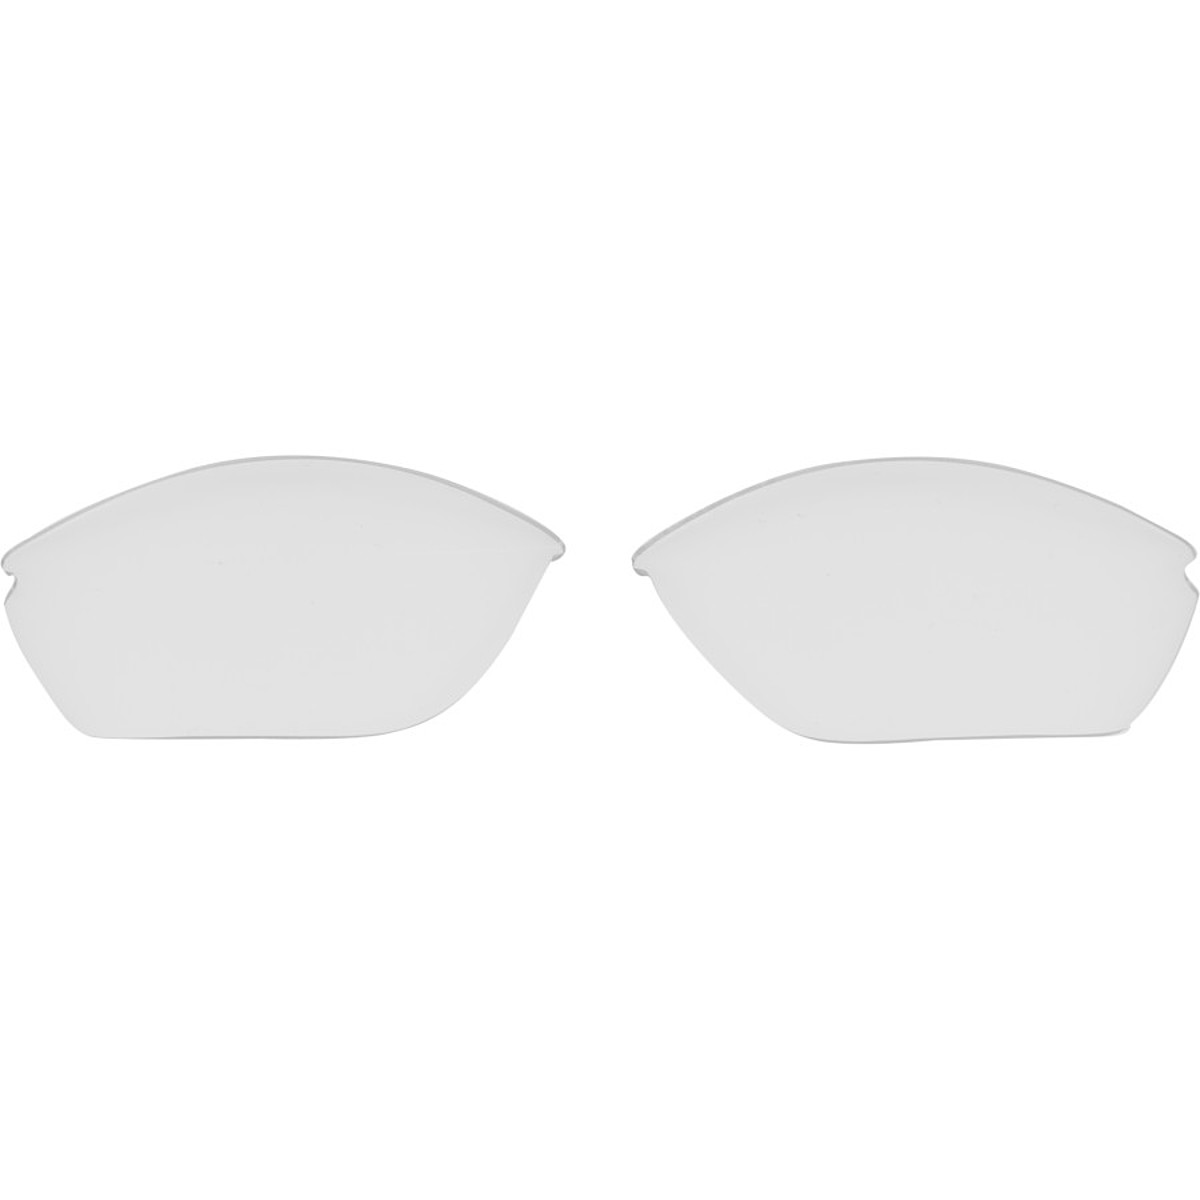 Native Eyewear Hardtop Lens Kit